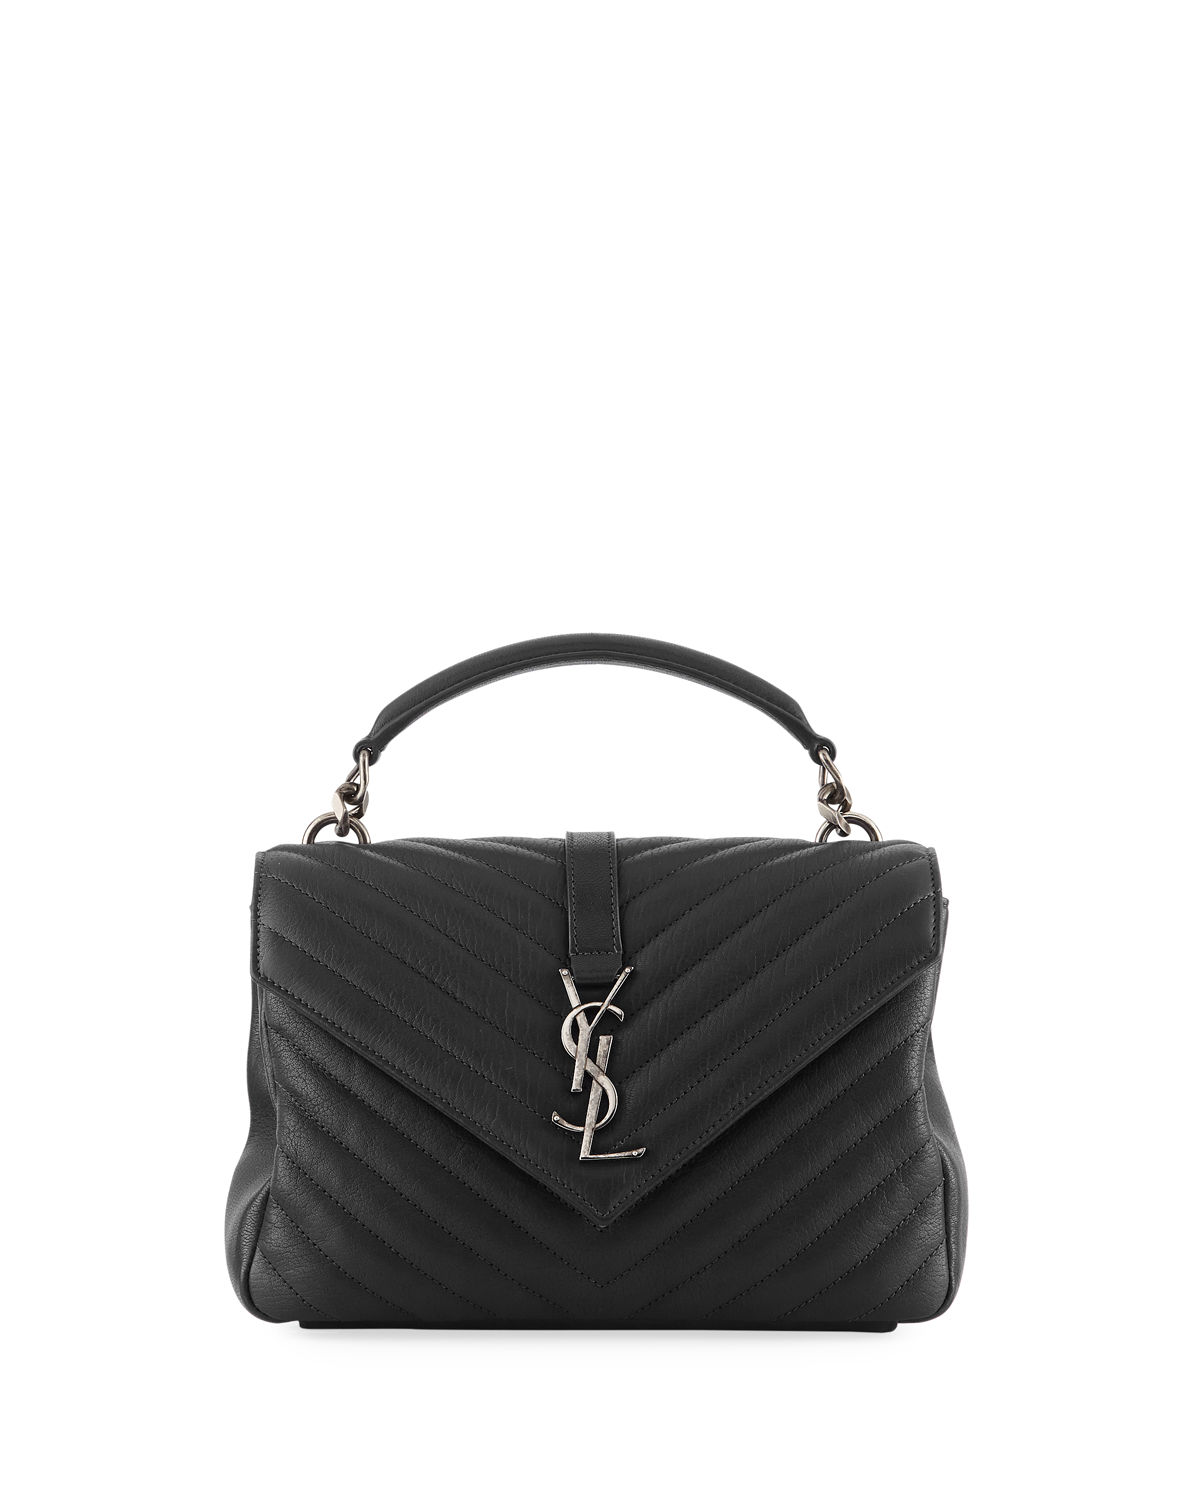 3bbb8fd7fc1 Saint Laurent College Medium Monogram YSL V-Flap Crossbody Bag - Silver  Hardware